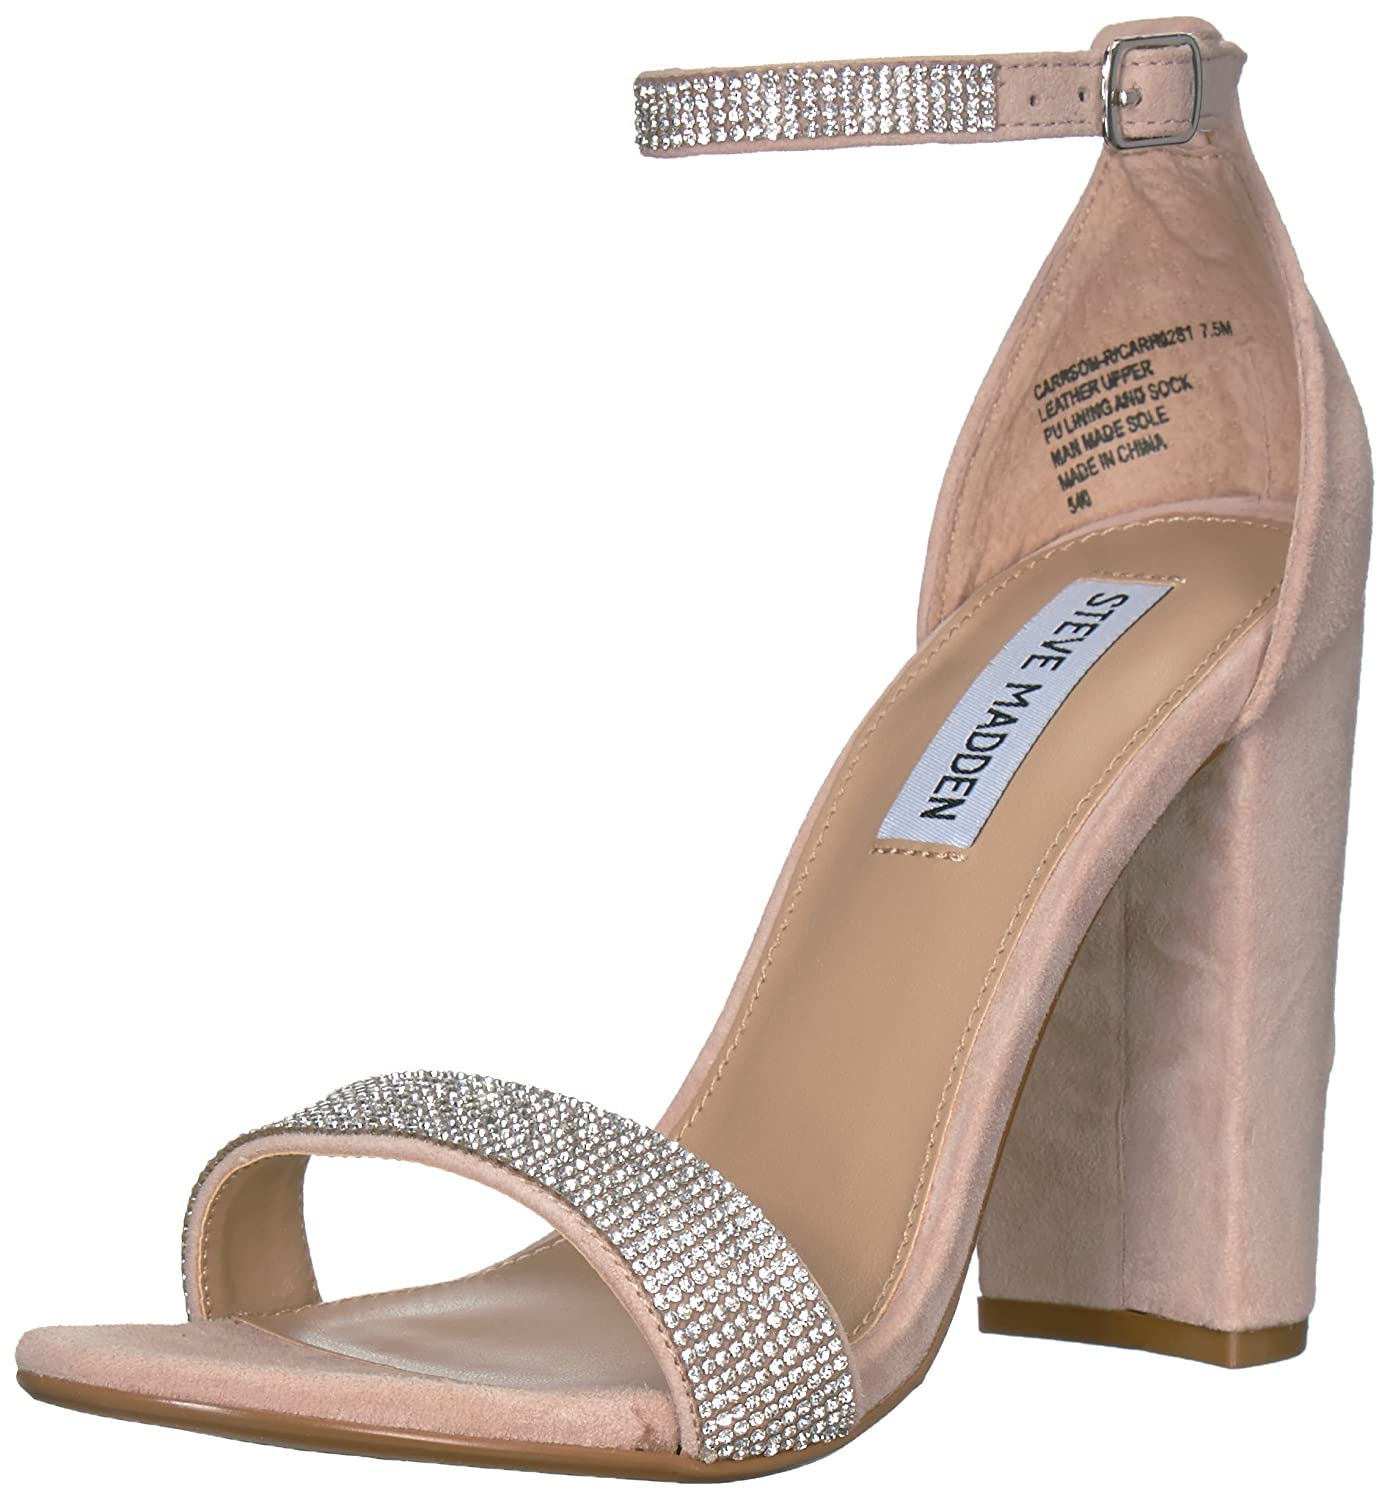 38c4158481d Amazon.com  Steve Madden Women s Carrson-R Heeled Sandal  Shoes